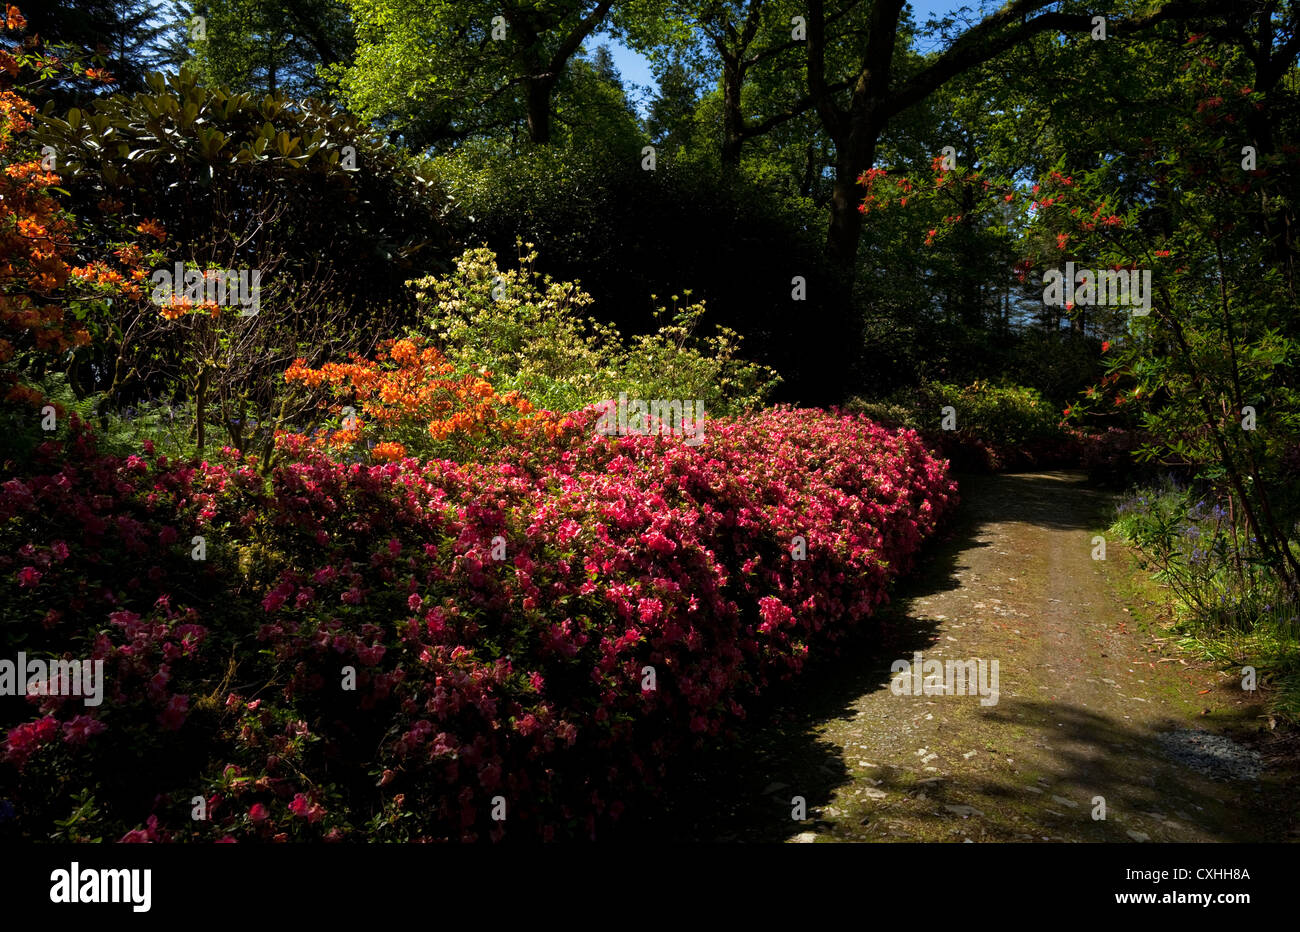 Pathway Lined with Rhodedendron and Azaleas, Mount Congreve, Robinsonian Wild Gardens, Near Kilmeaden, County Waterford, - Stock Image